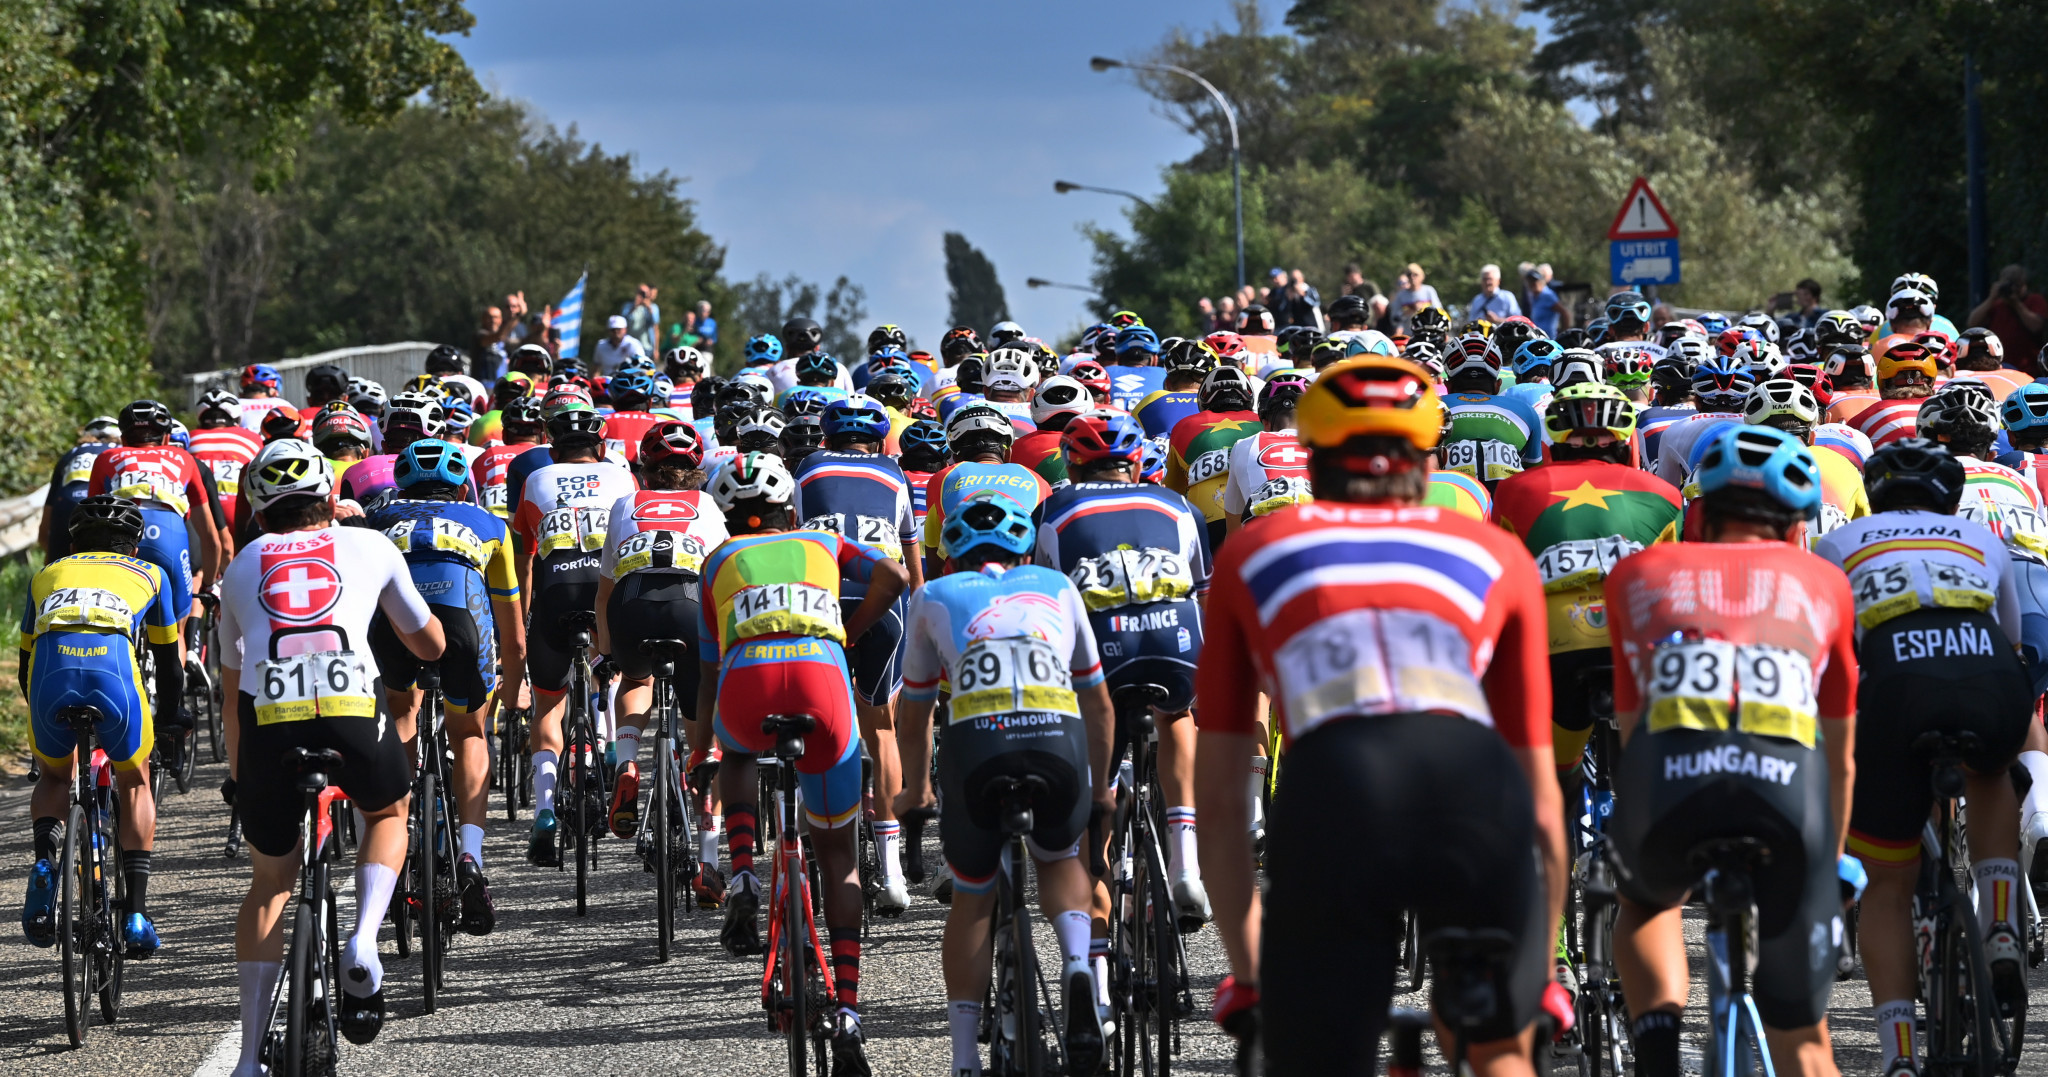 The UCI Road World Championships has predominantly been held in Europe ©Getty Images